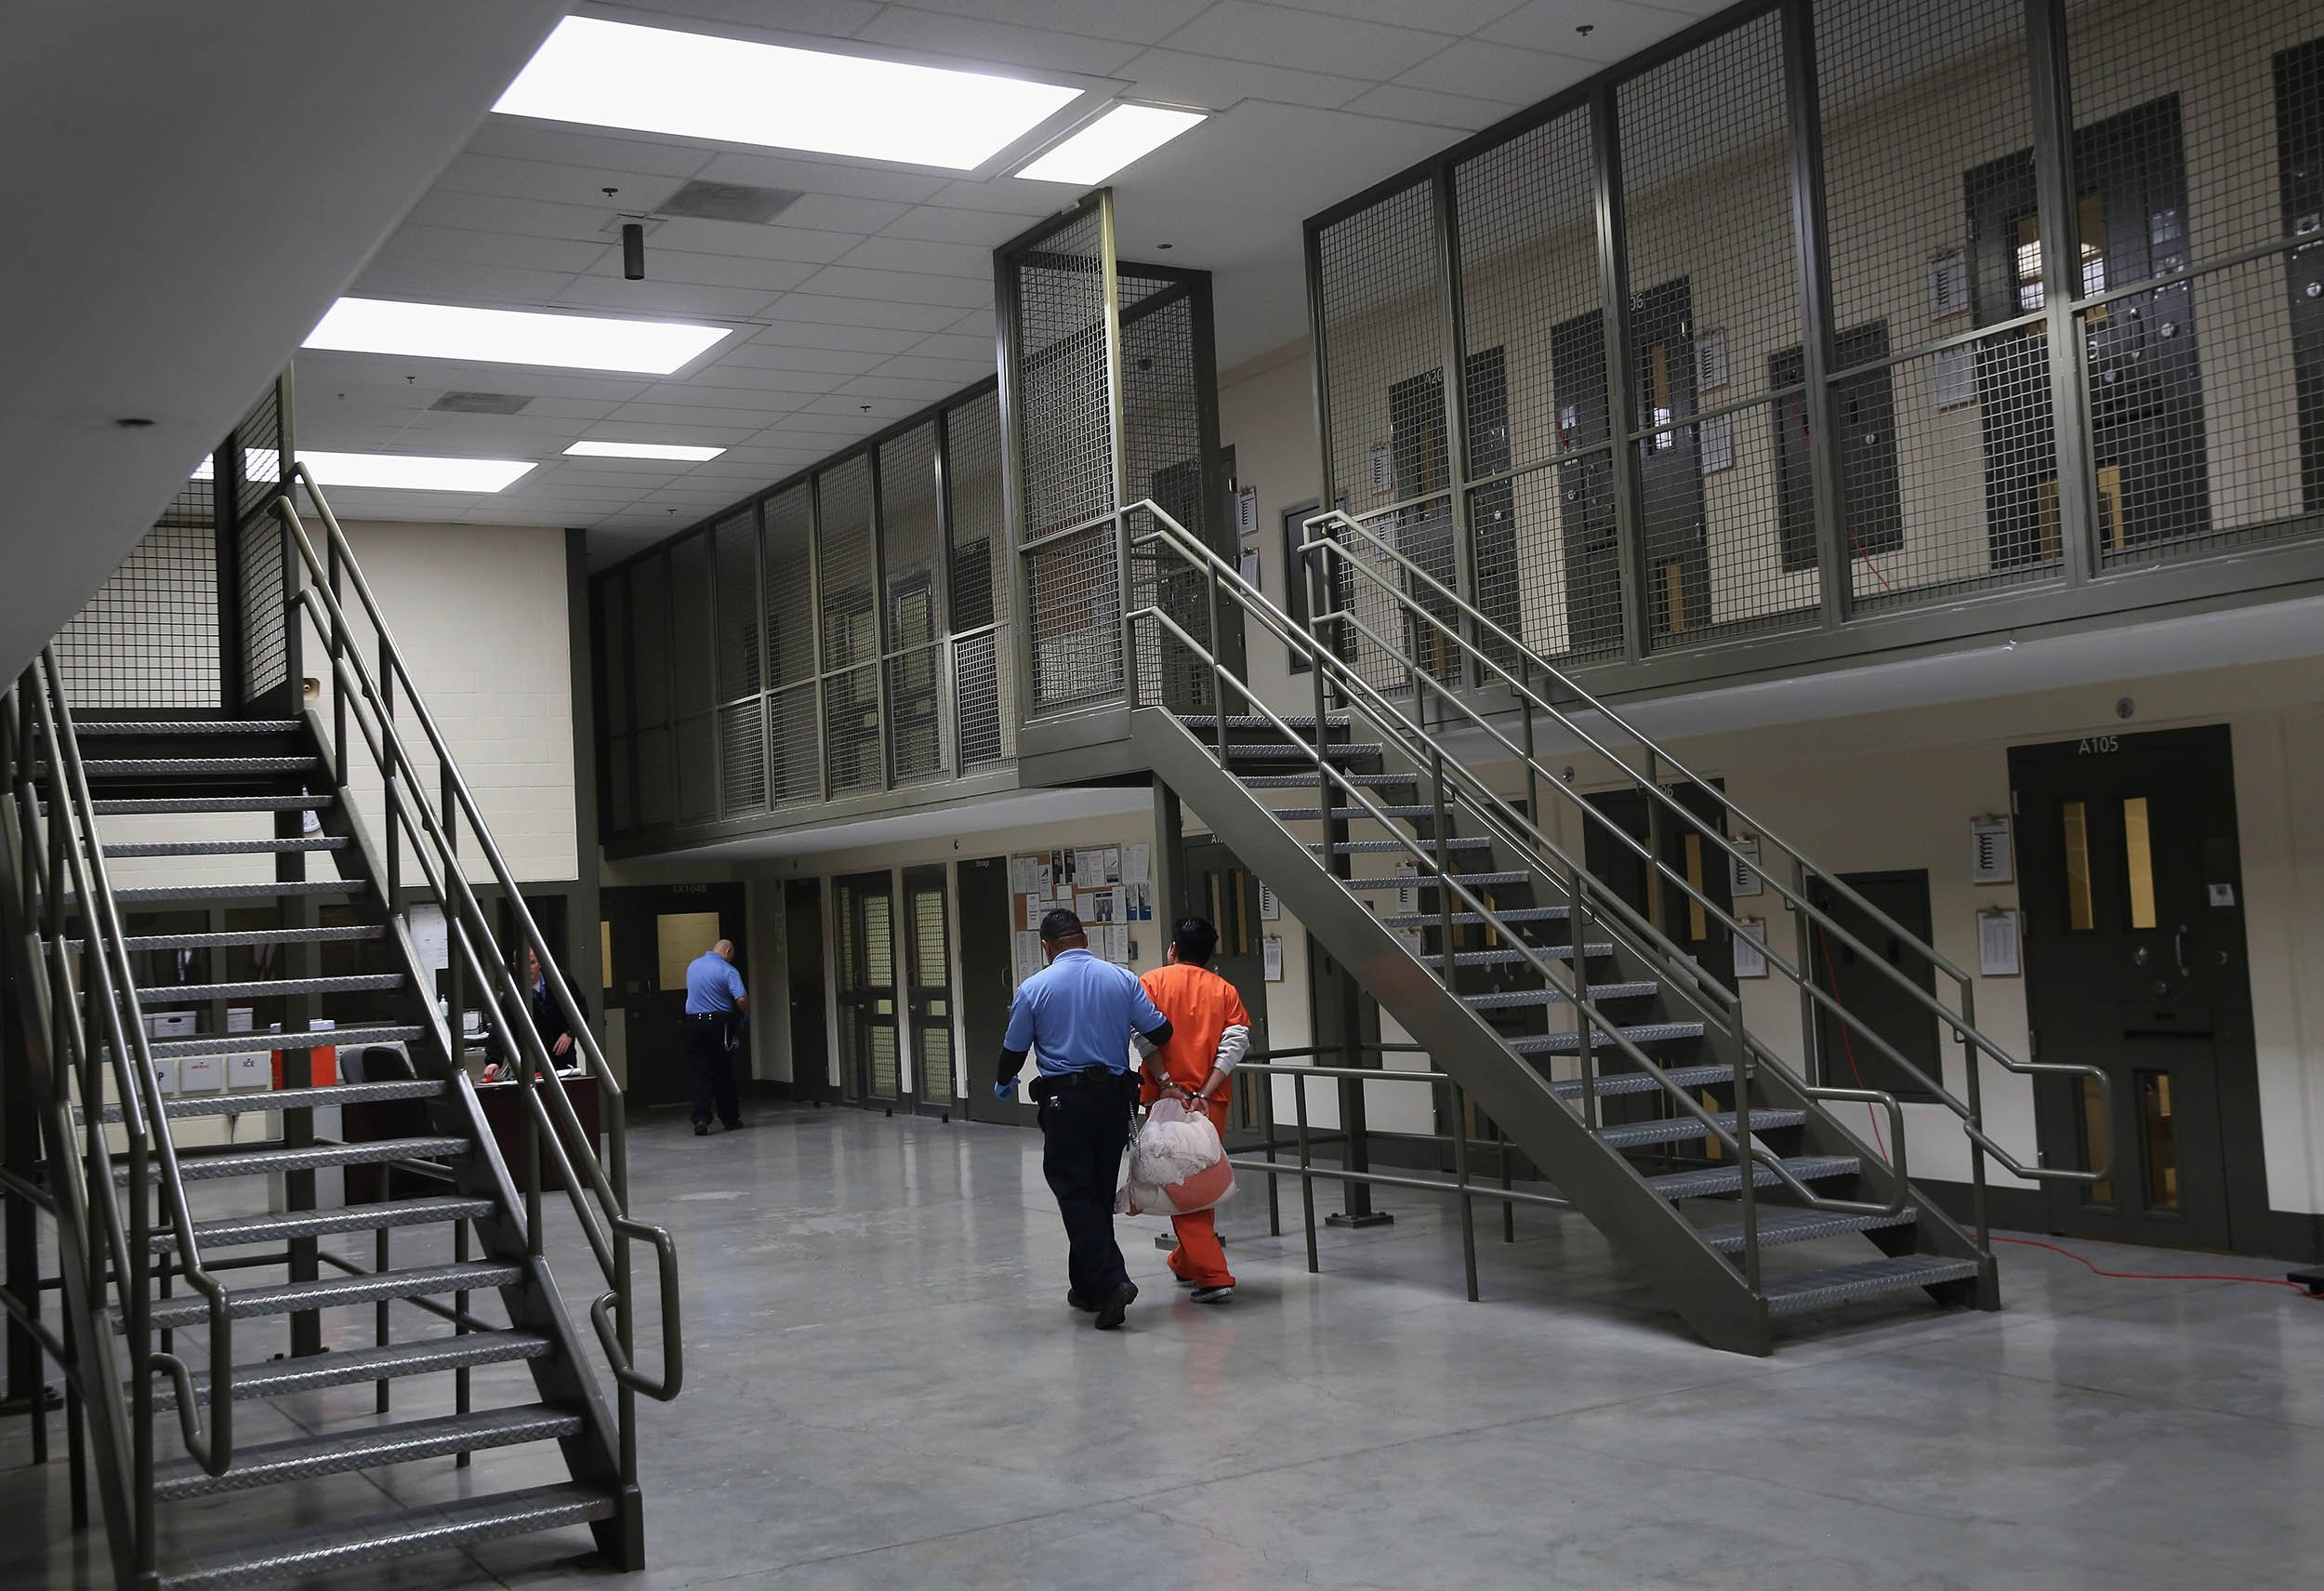 Report: America's Prison Population Is Growing Again